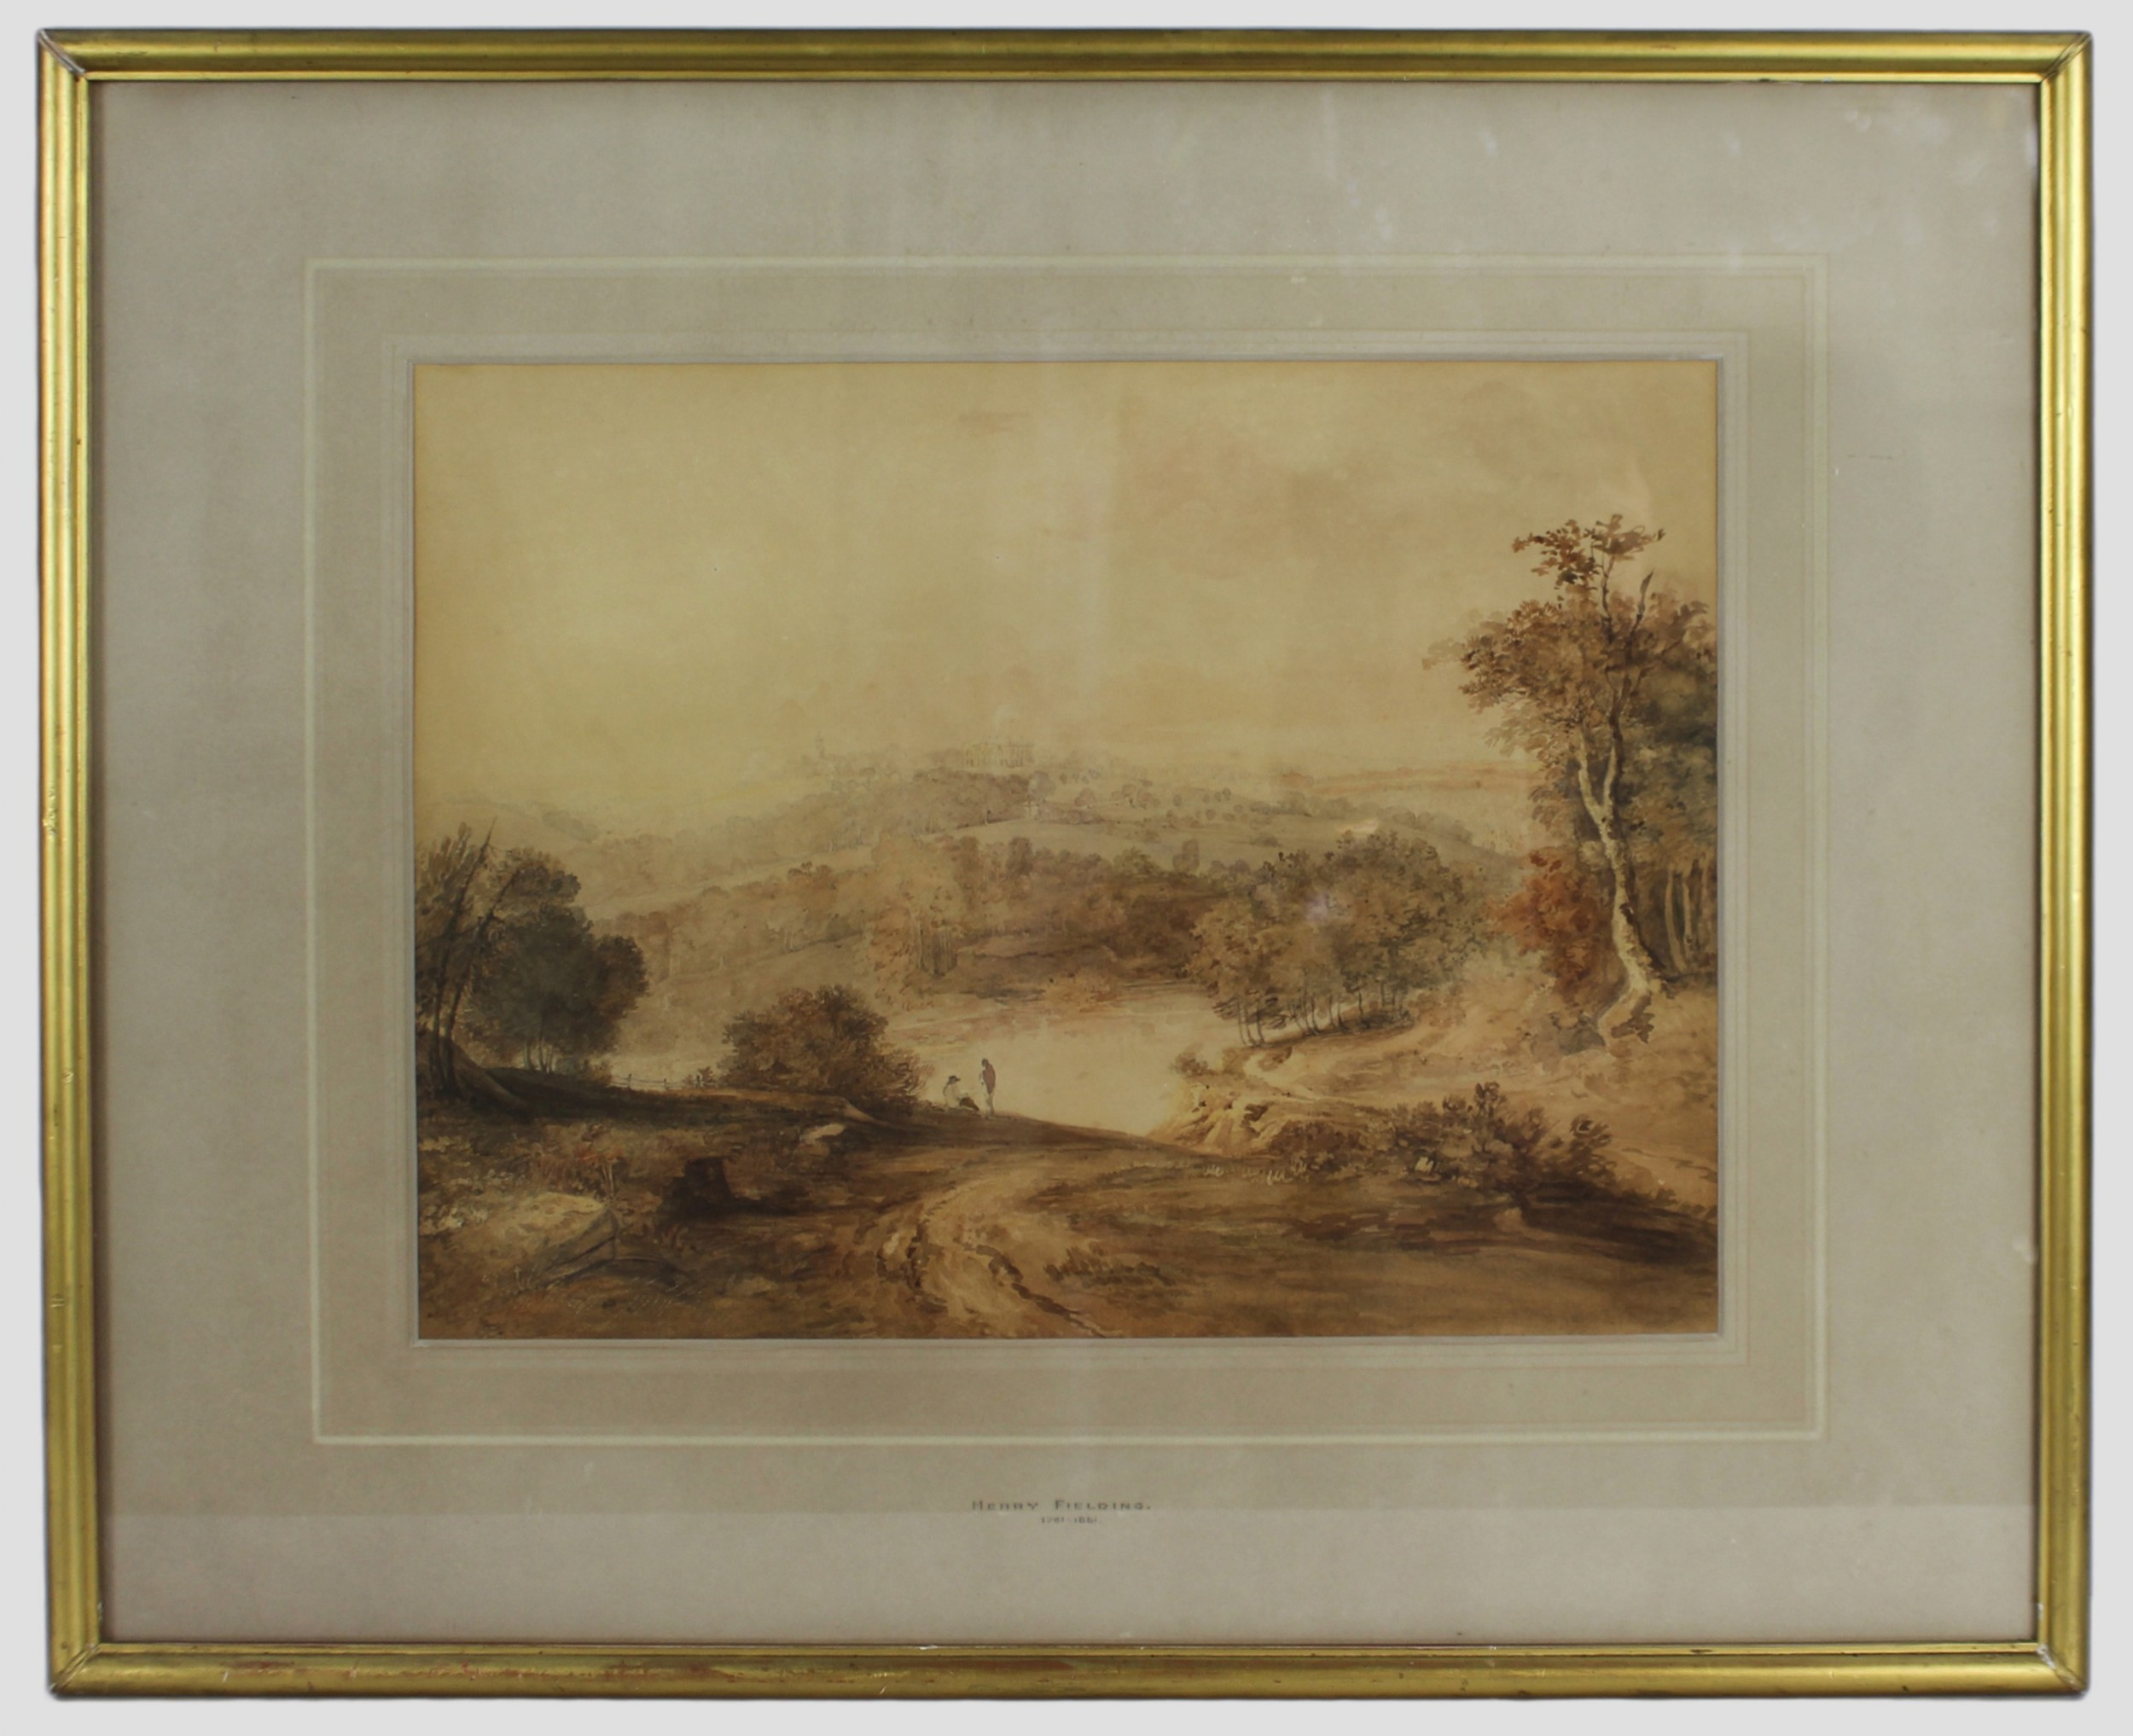 sepia landscape watercolour by henry fielding english 17811851